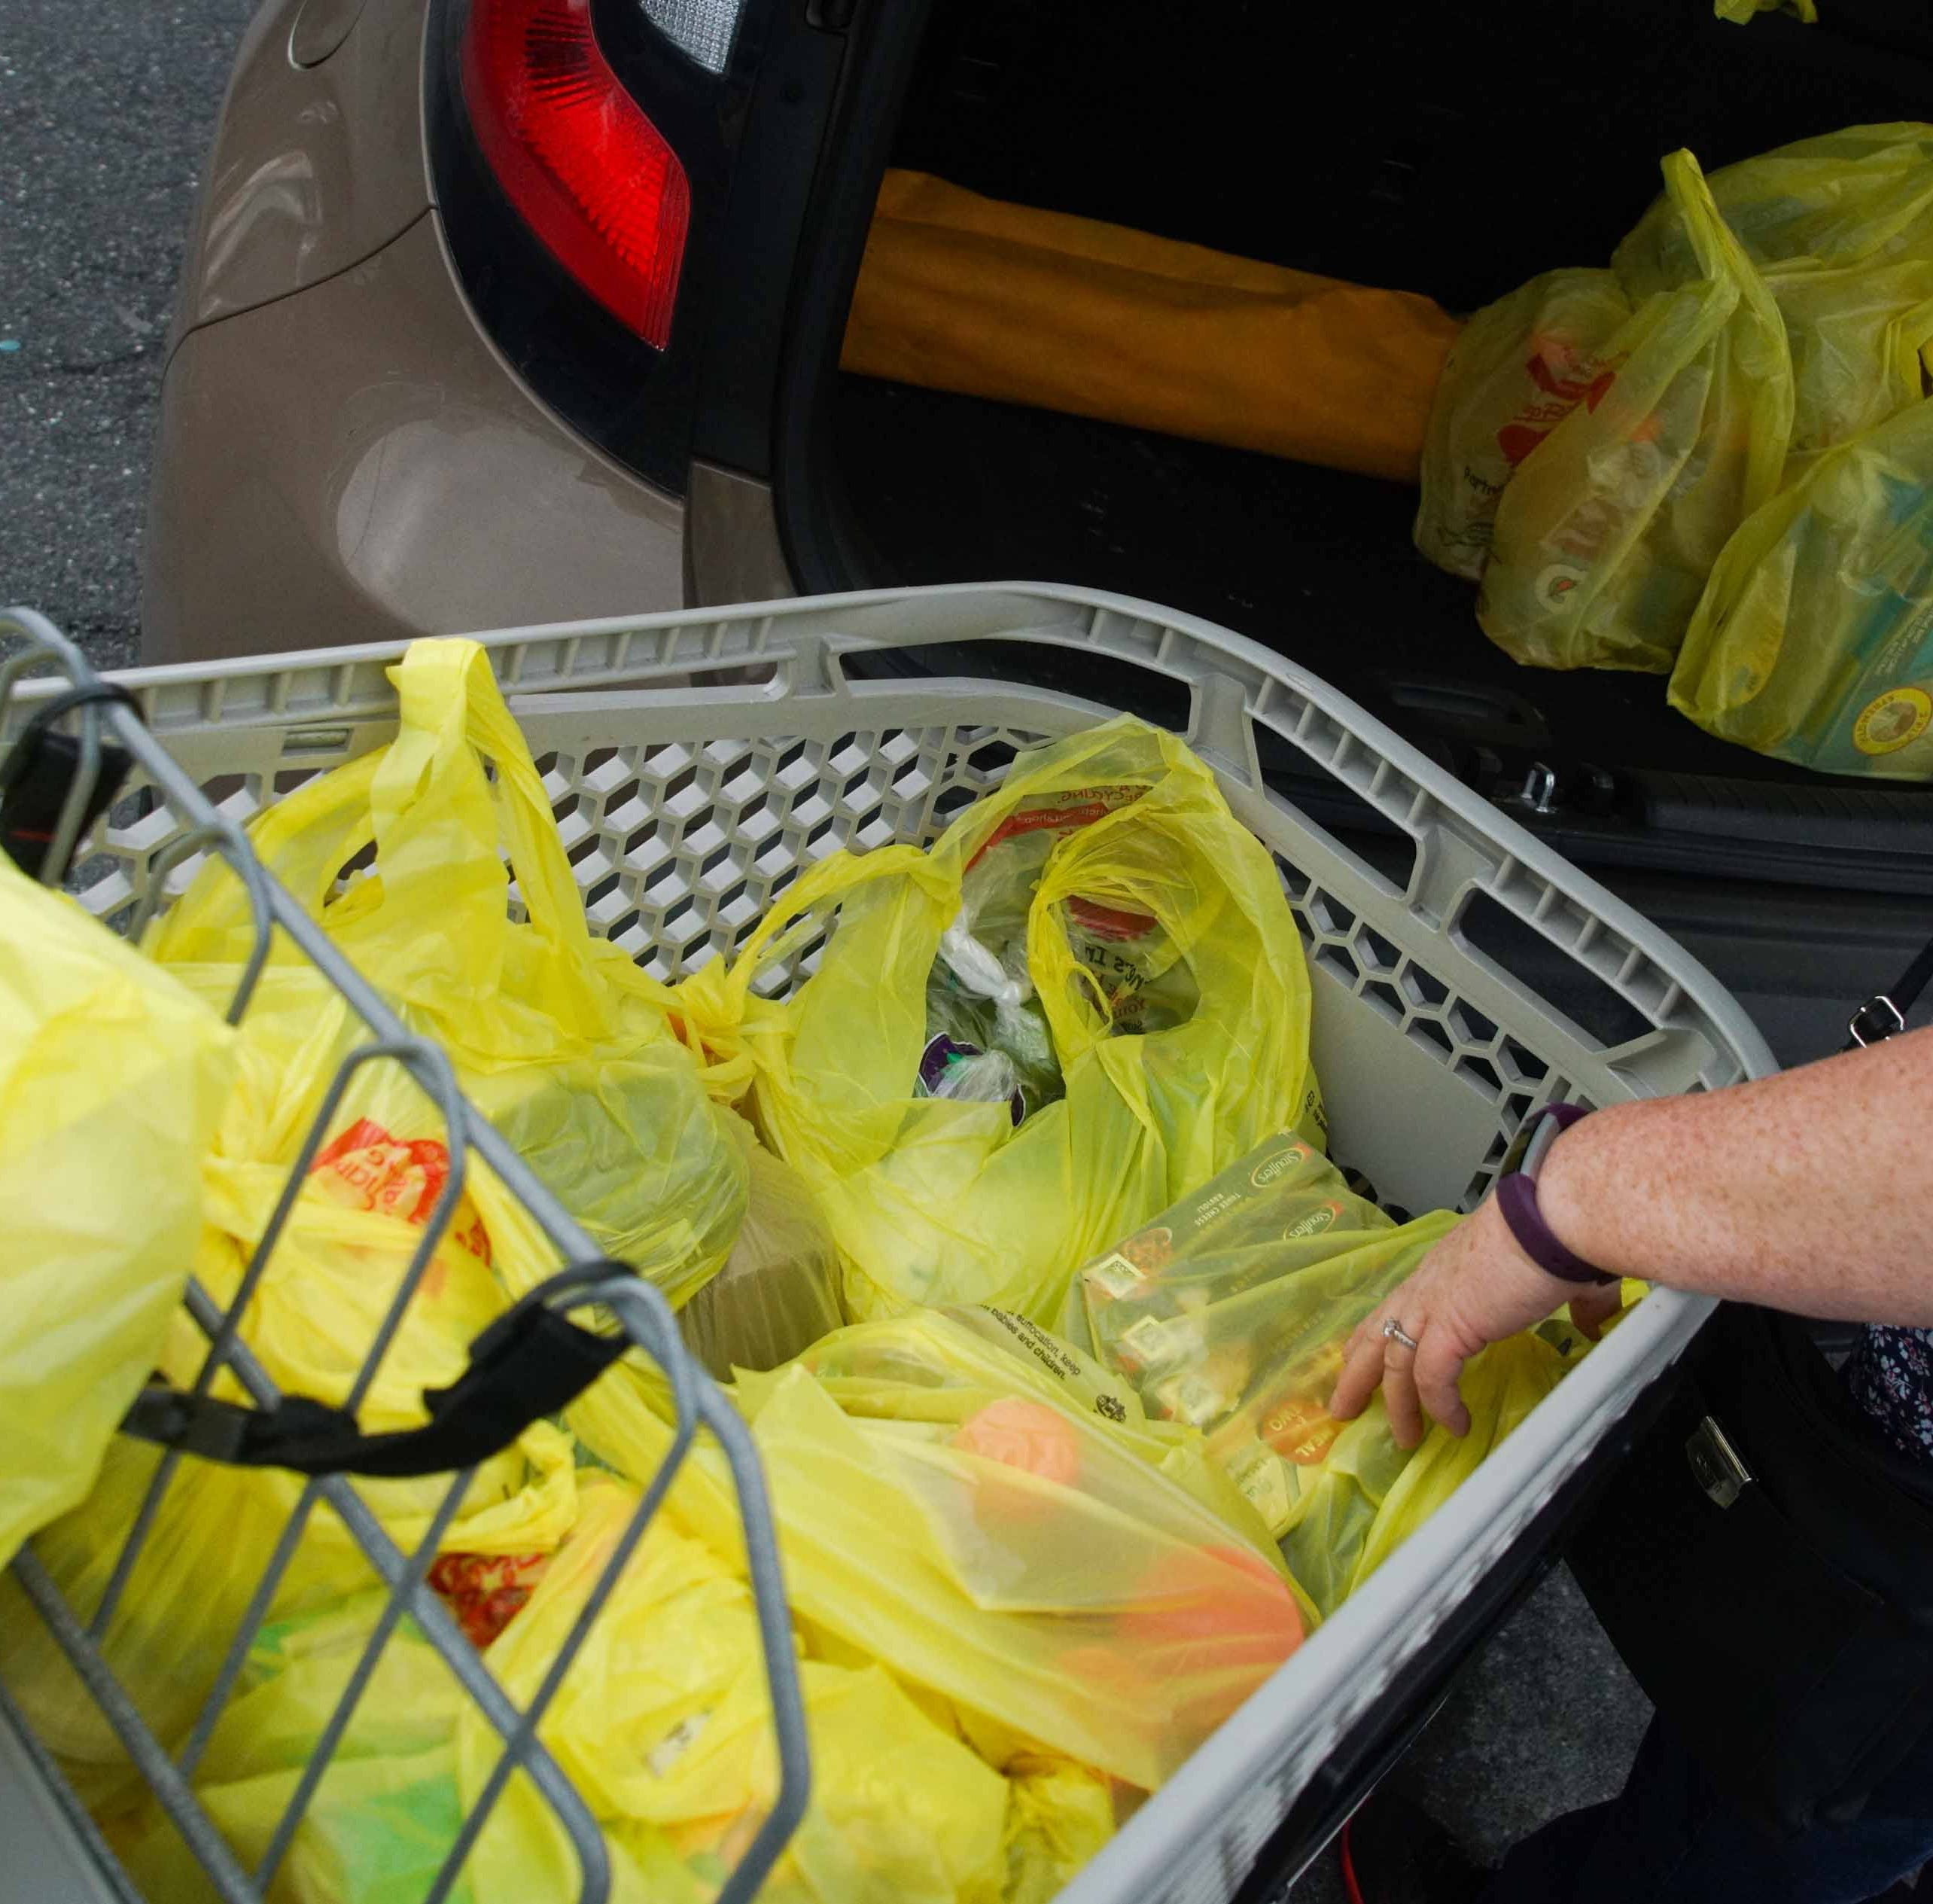 Proposed plastic bag ban gains traction in Delaware